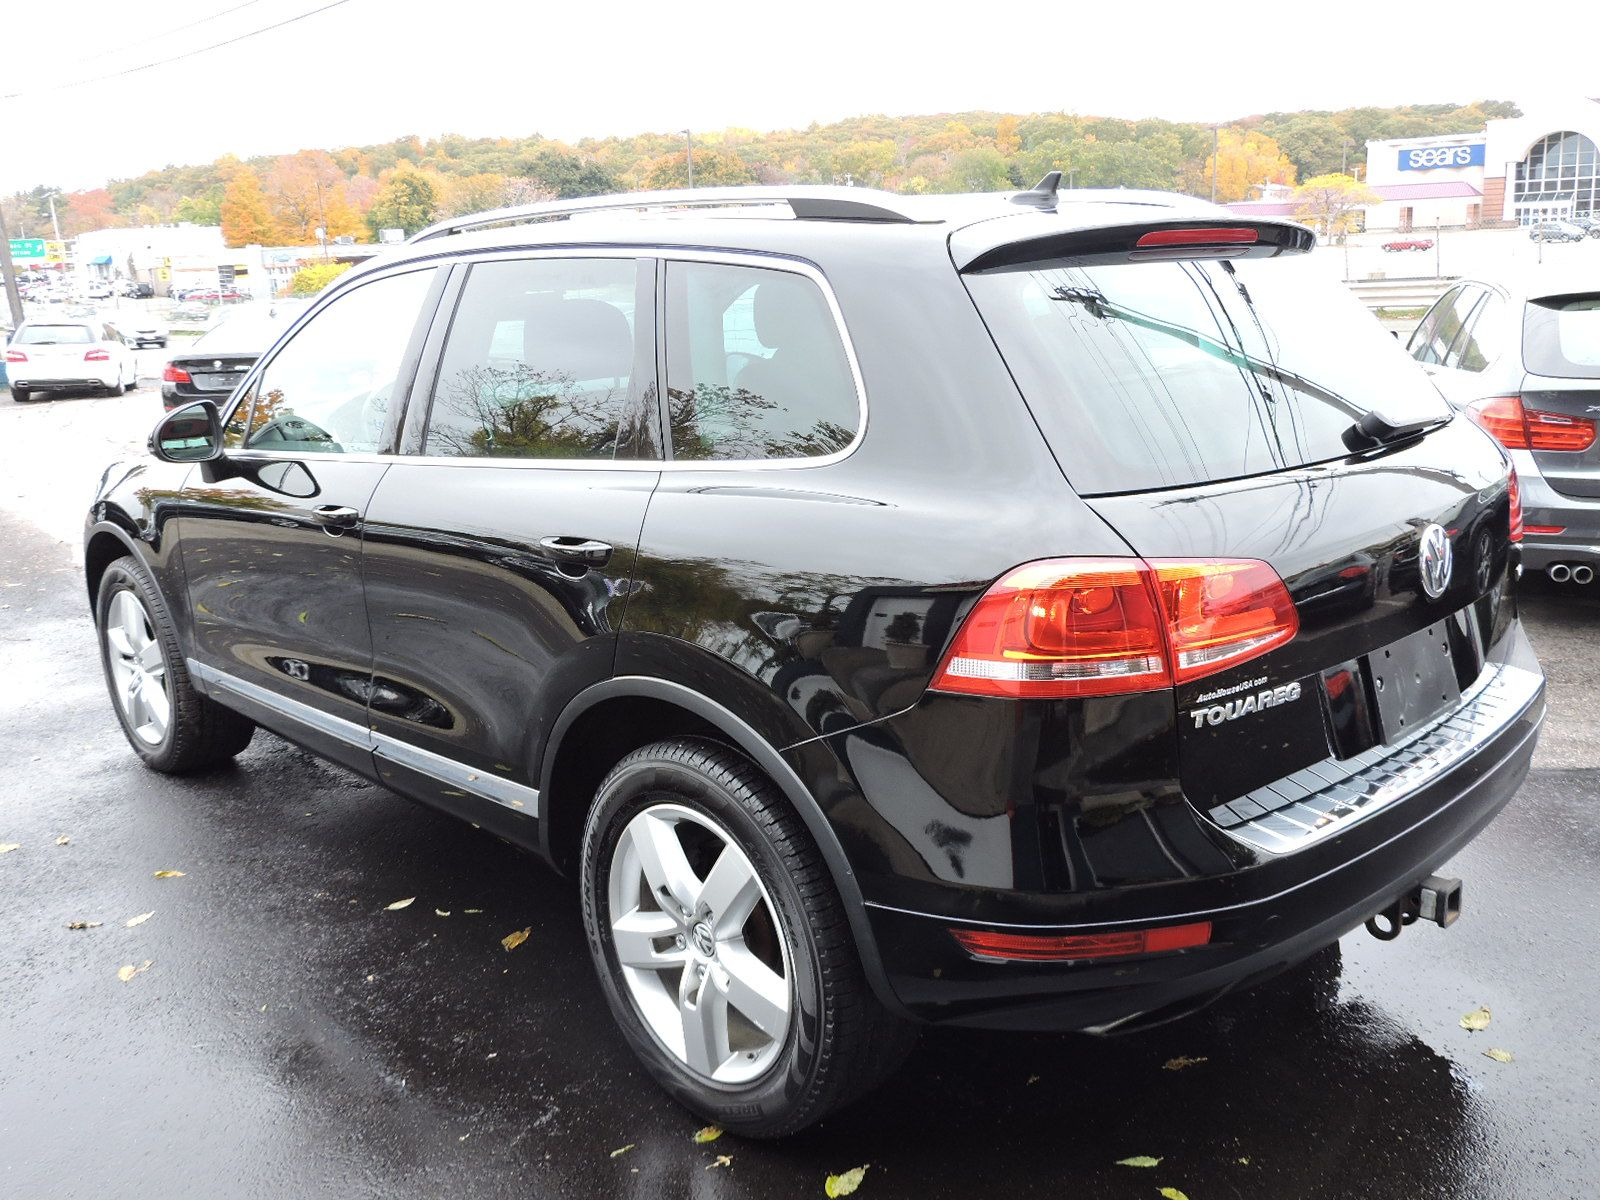 2012 Volkswagen Touareg VR6 Executive AWD